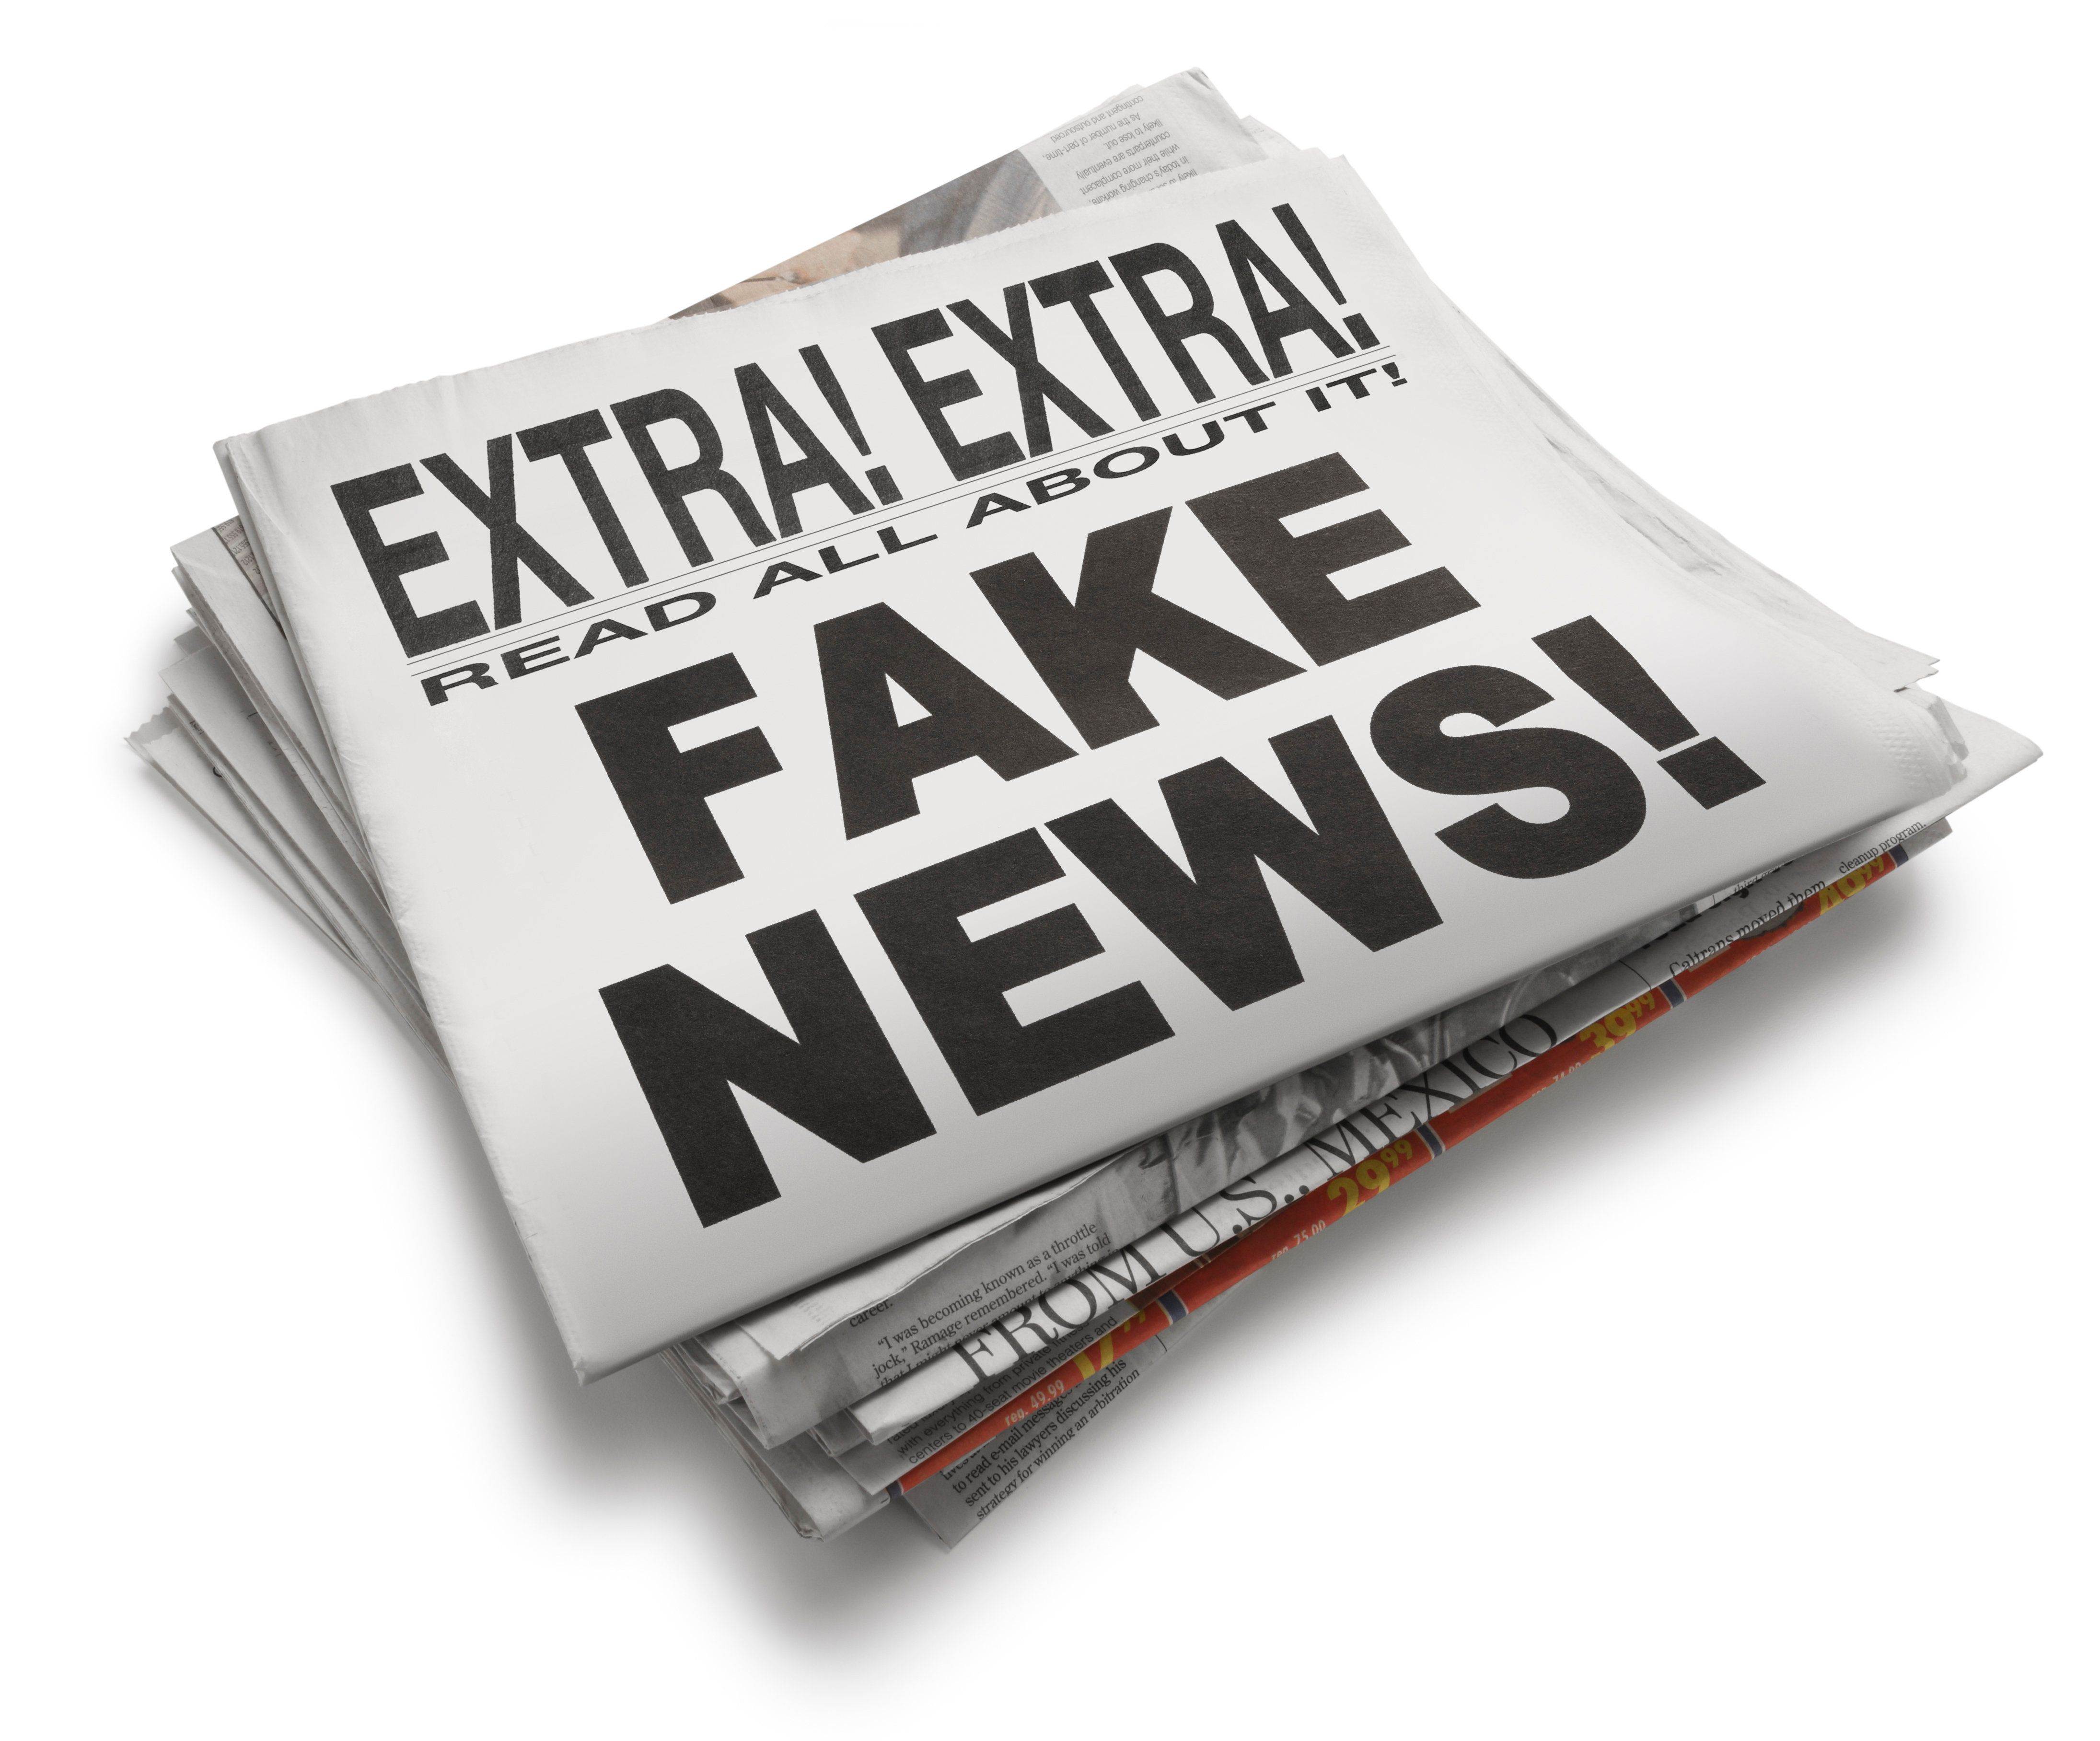 The front page of a newspaper with the headline 'Fake News' which illustrates the current phenomena. Front section of newspaper is on top of loosely stacked remainder of newspaper. All visible text is authored by the photographer. Photographed in a studio setting on a white background with a slight wide angle lens.